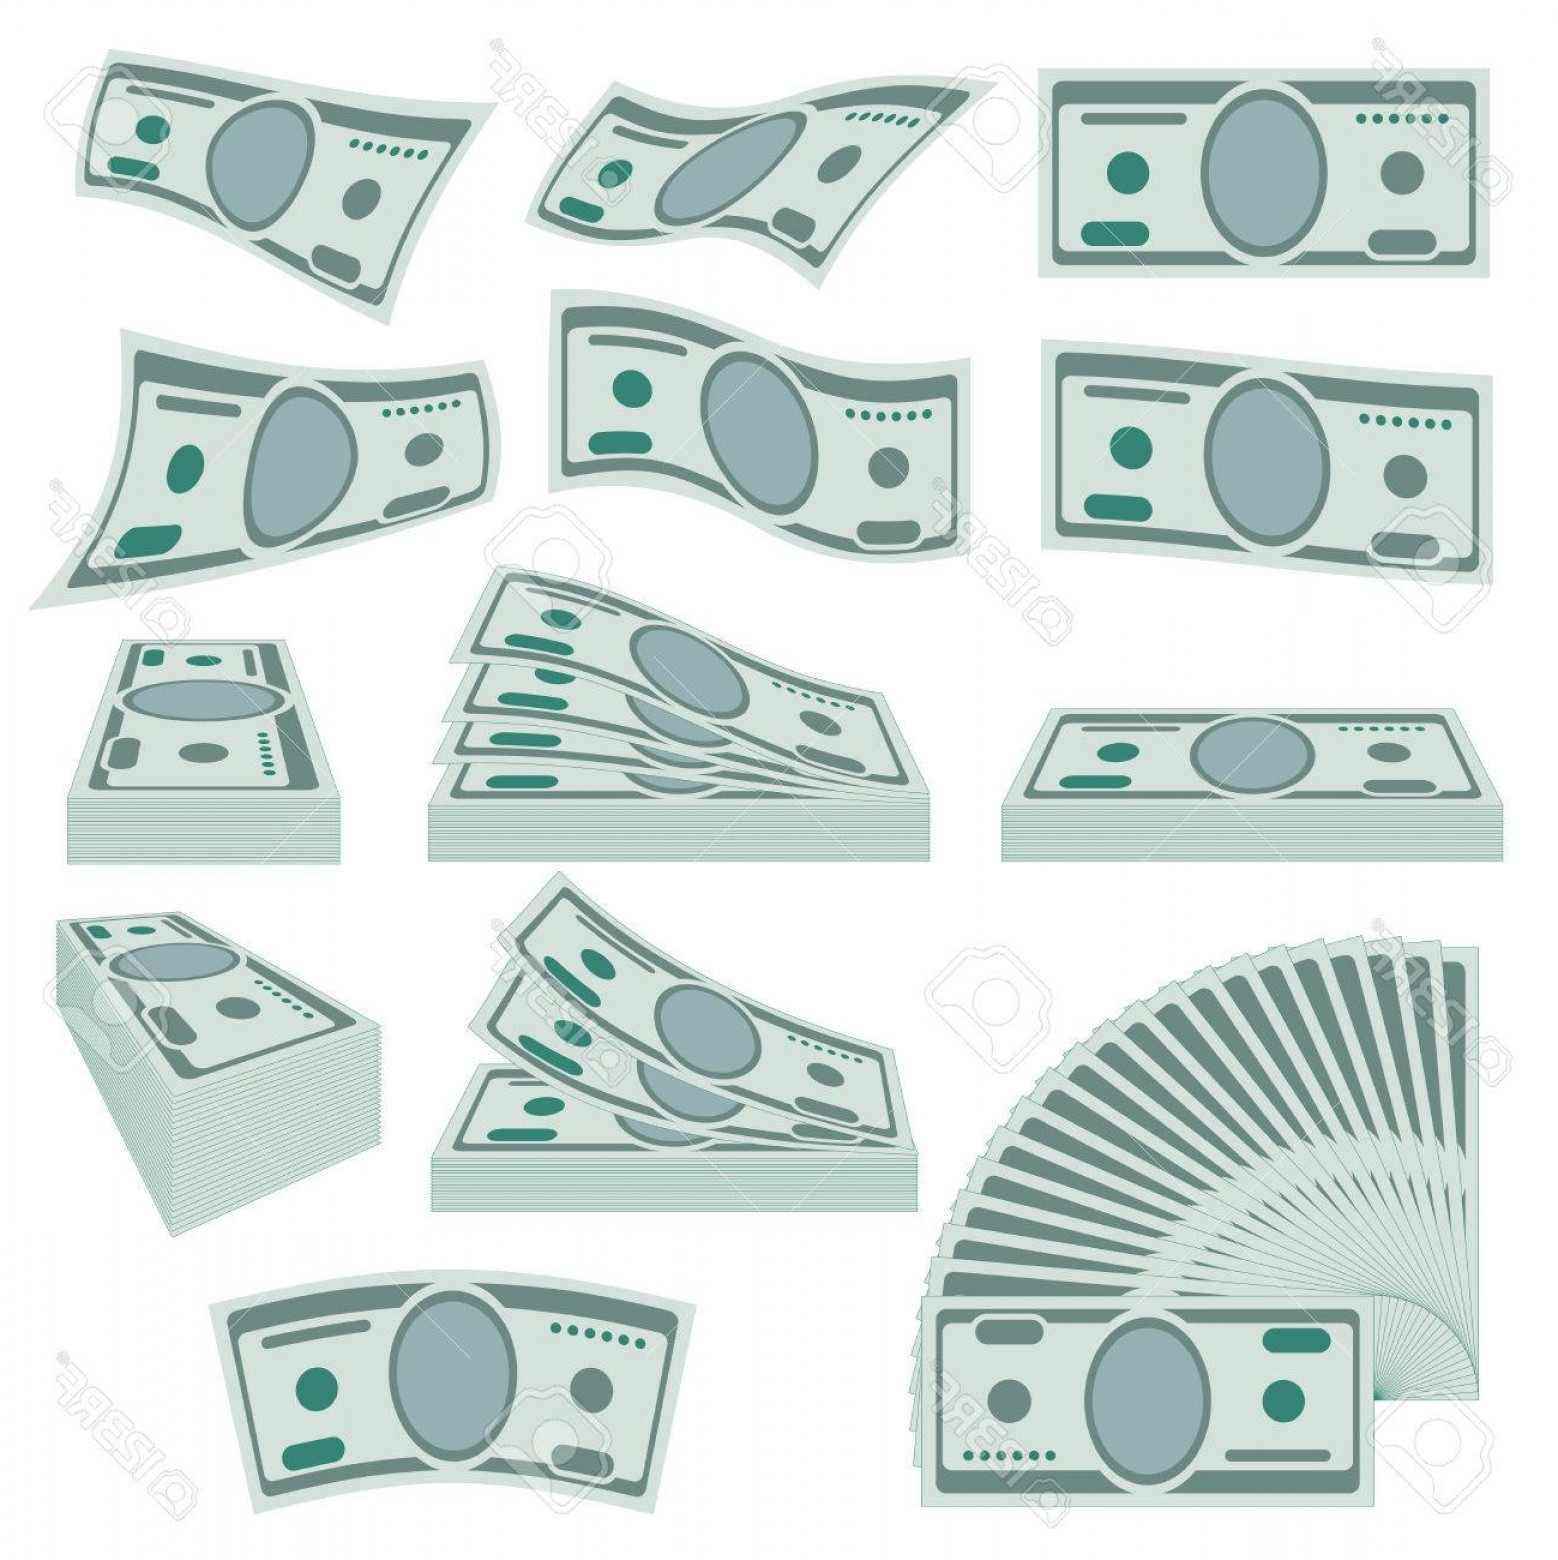 Hundreds Of Money Stacks Vector: Photostock Vector Us Dollars Money Stacks Vector Set Banknote Money Paper Illustration Finance Currency Cash Money